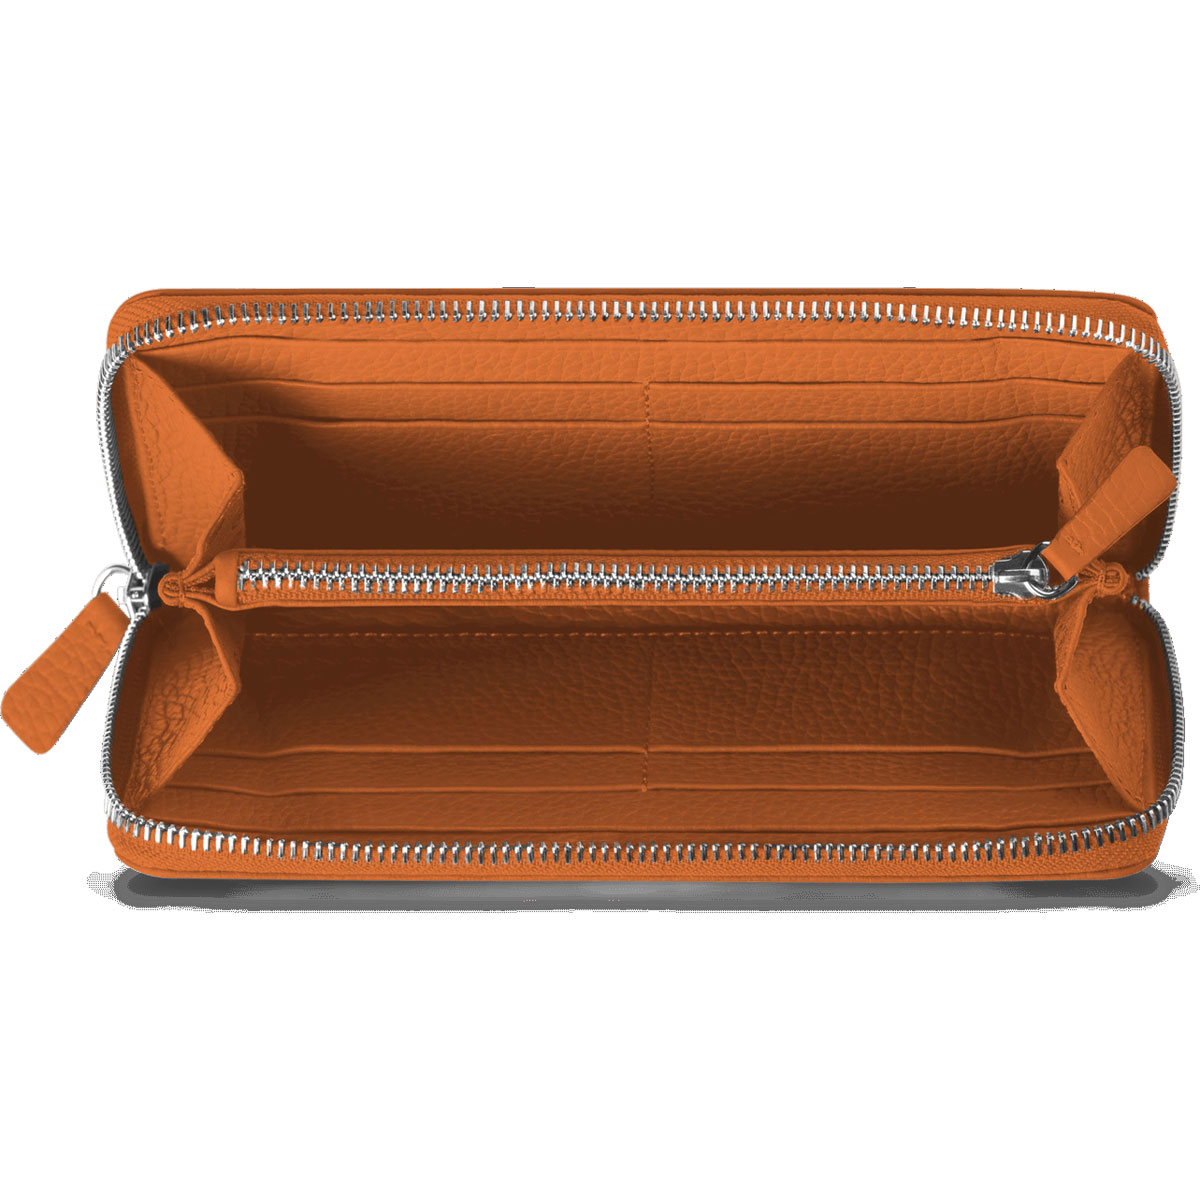 Caran d'Ache Leman Saffron Leather Women's Zip Around Wallet